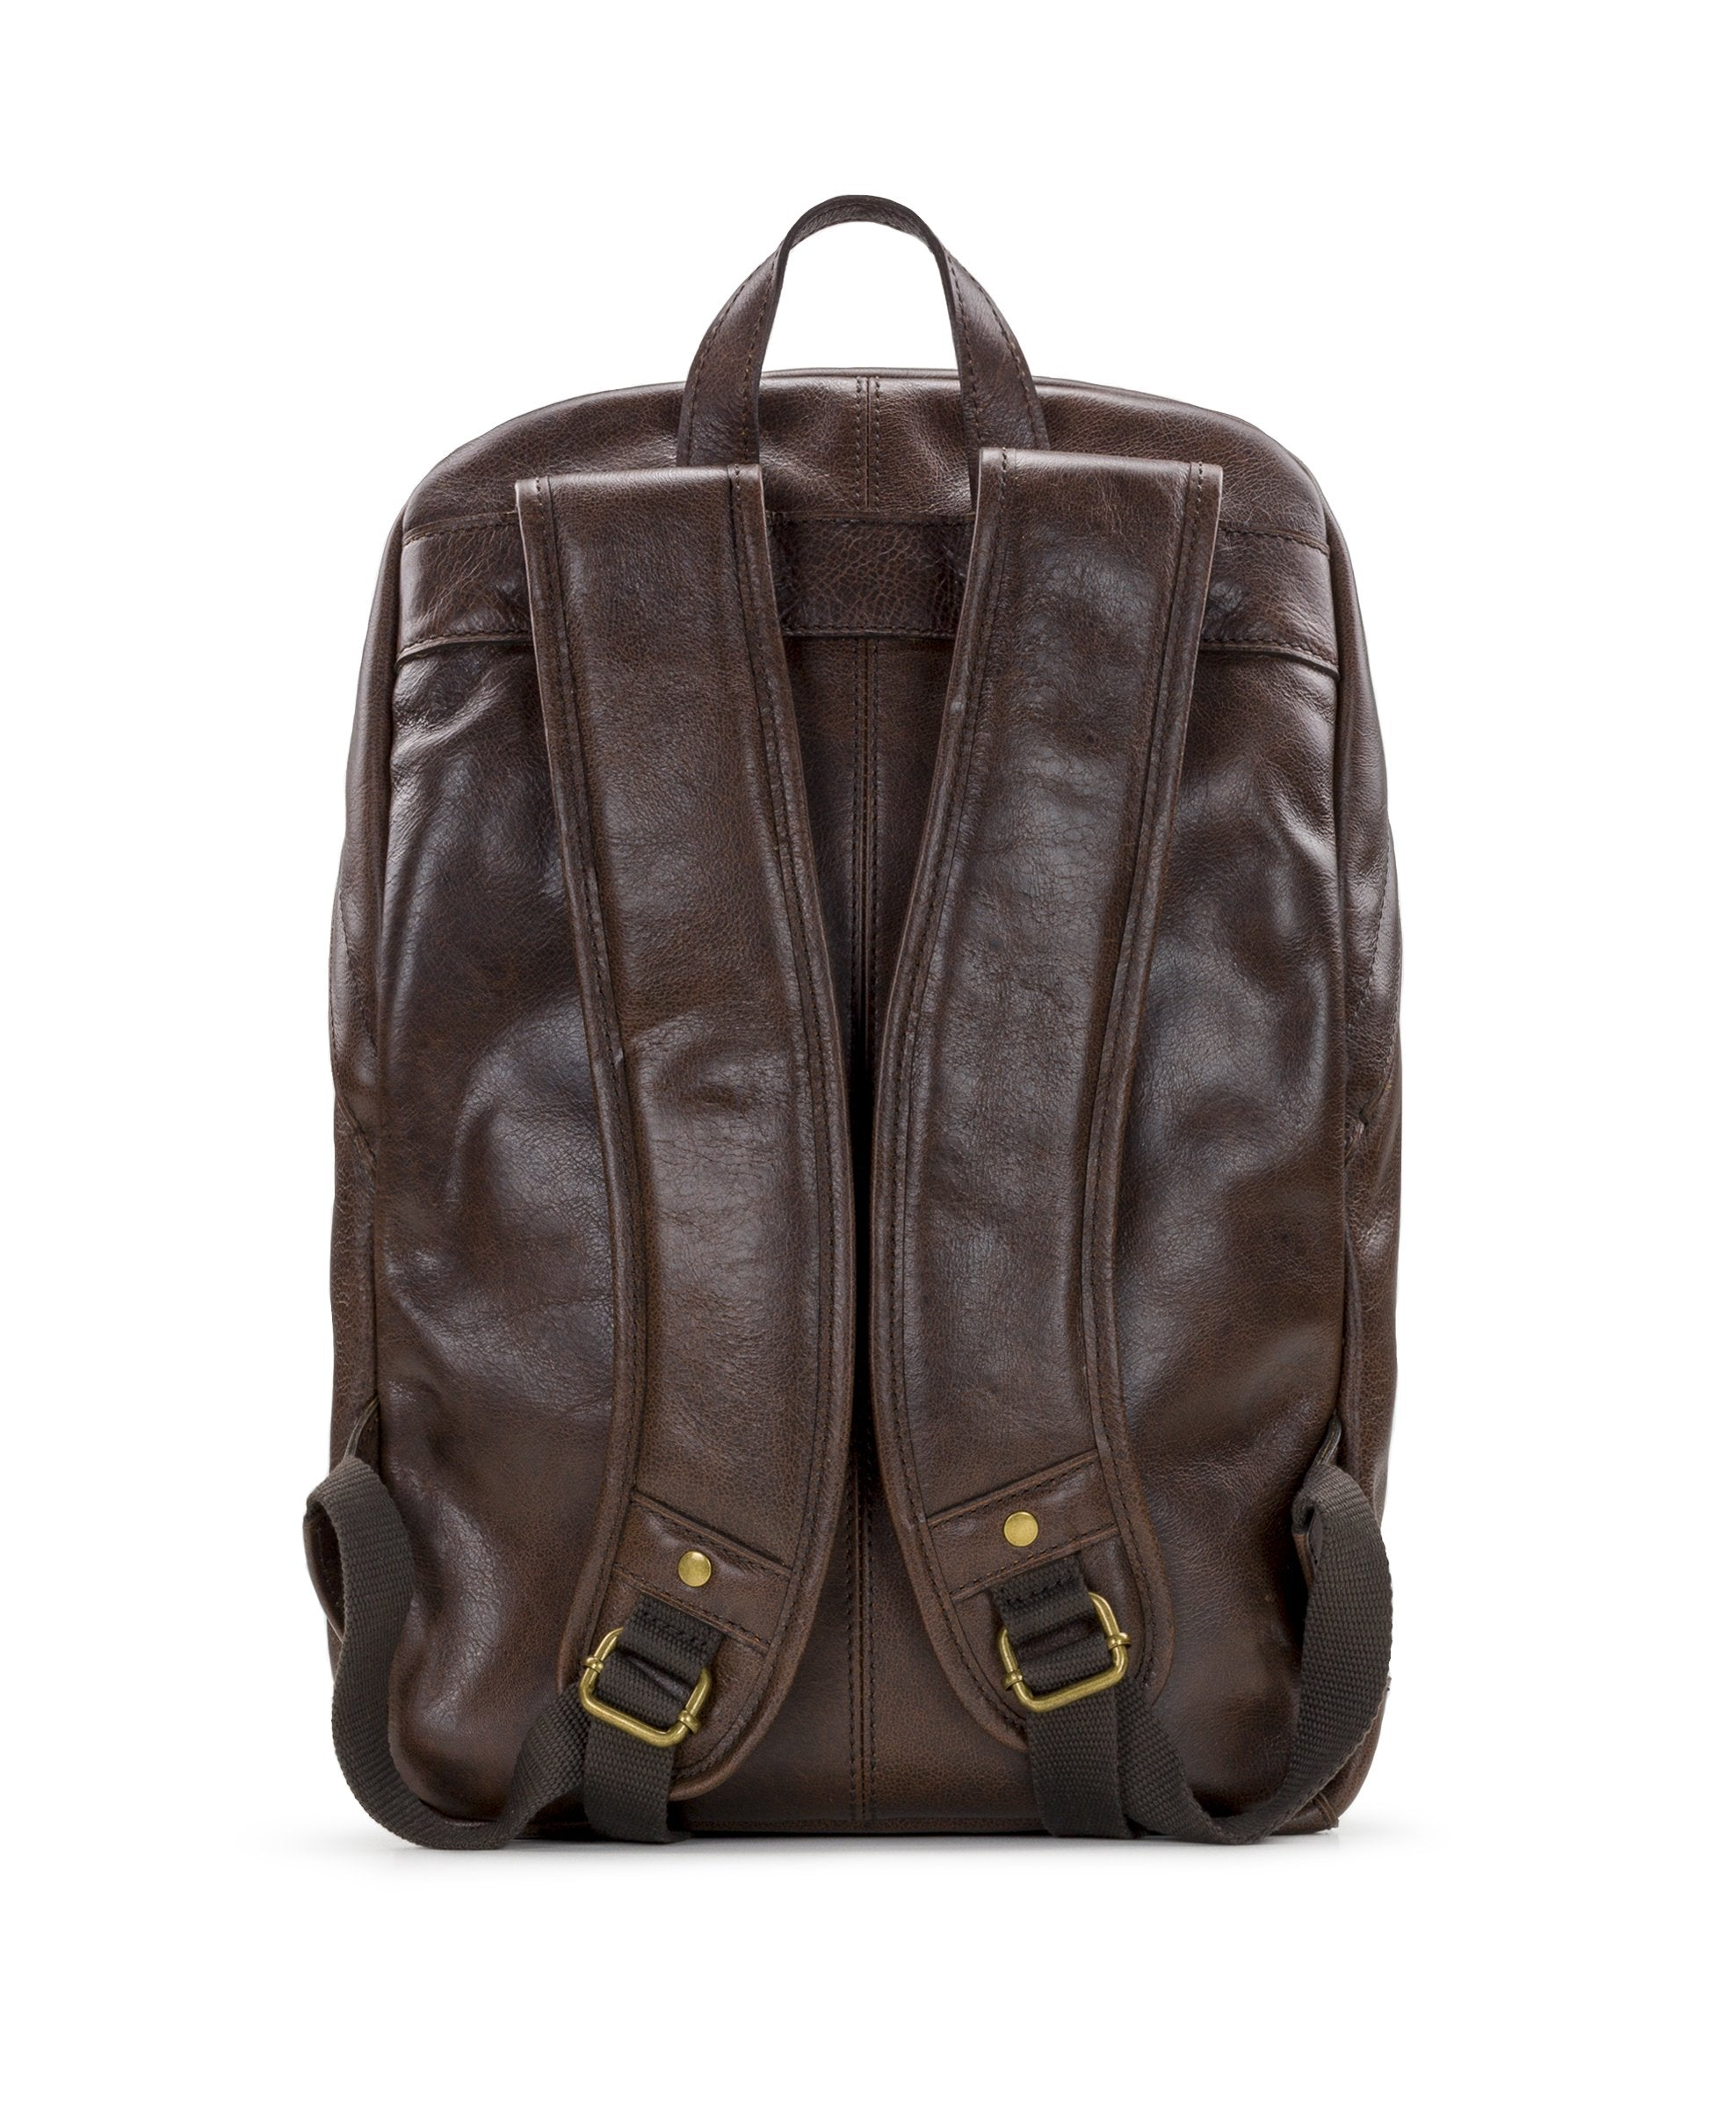 Tuscan Backpack II - Chocolate 2